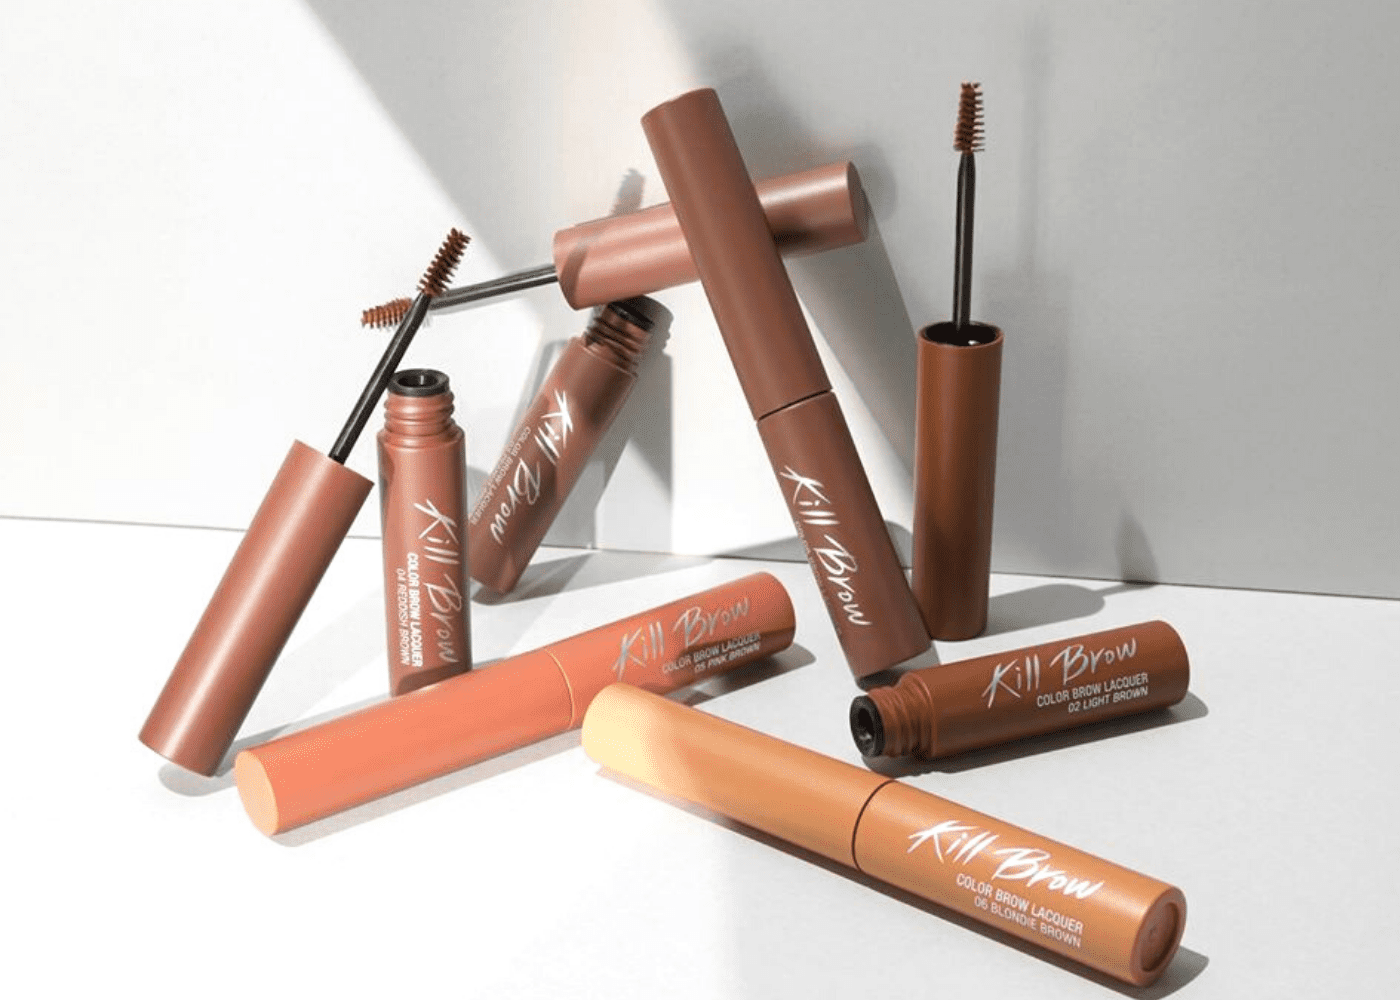 Clio Kill Brow Color Brow Lacquer | March 2020 beauty review | Honeycombers Singapore